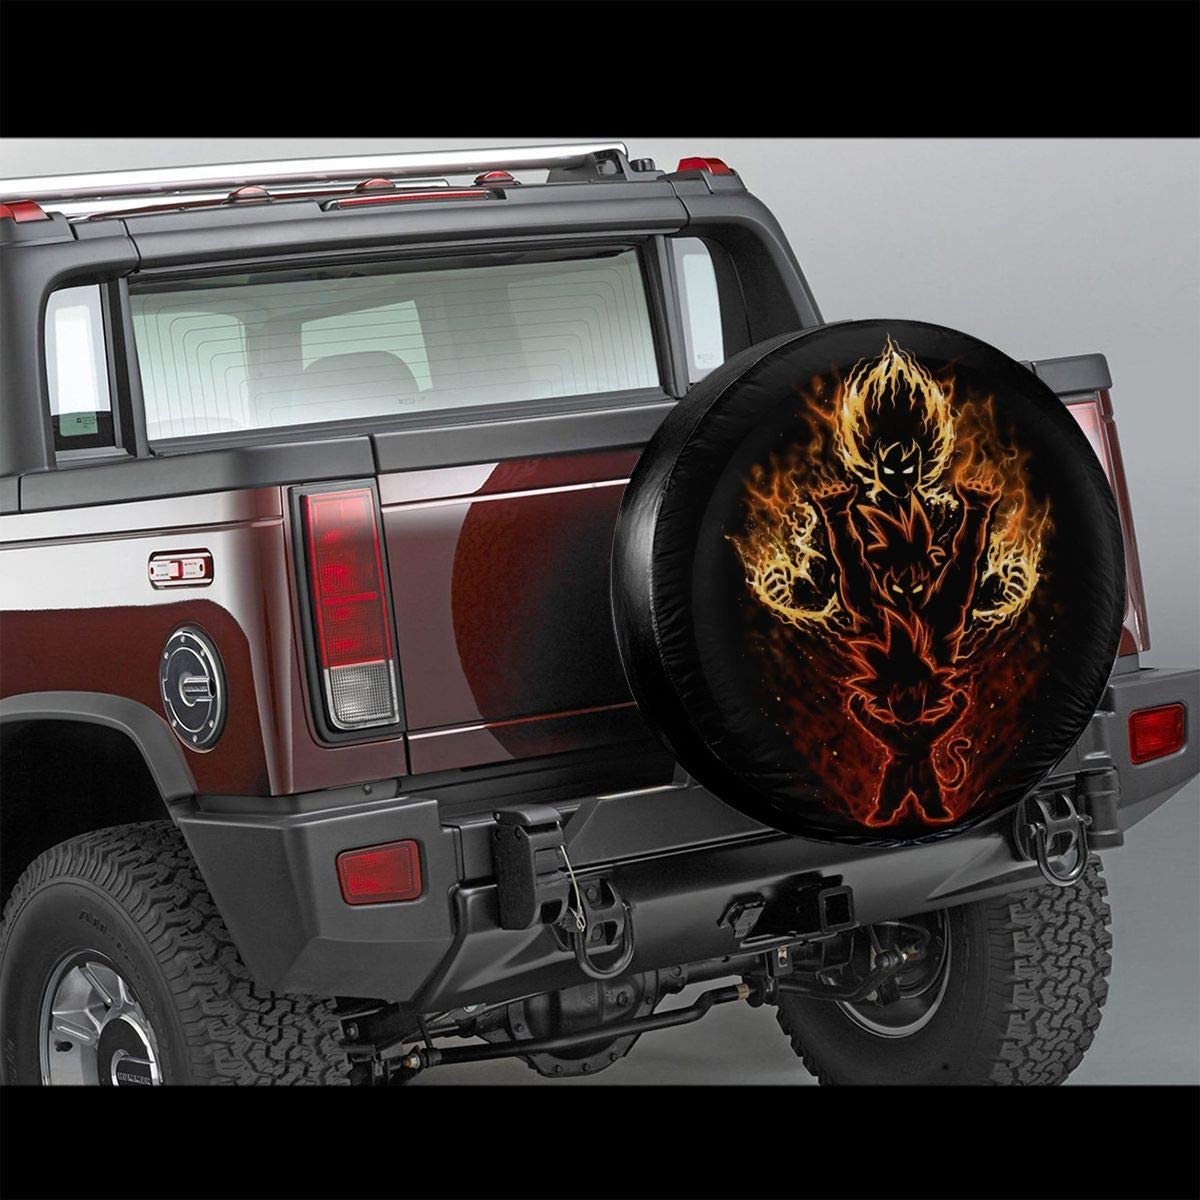 LMHBLTOP Dragon Ball Z Goku Tire Cover Multifunction Spare Tire Cover Wheel Covers for RV,Auto Truck,Car,Camper,Trailer